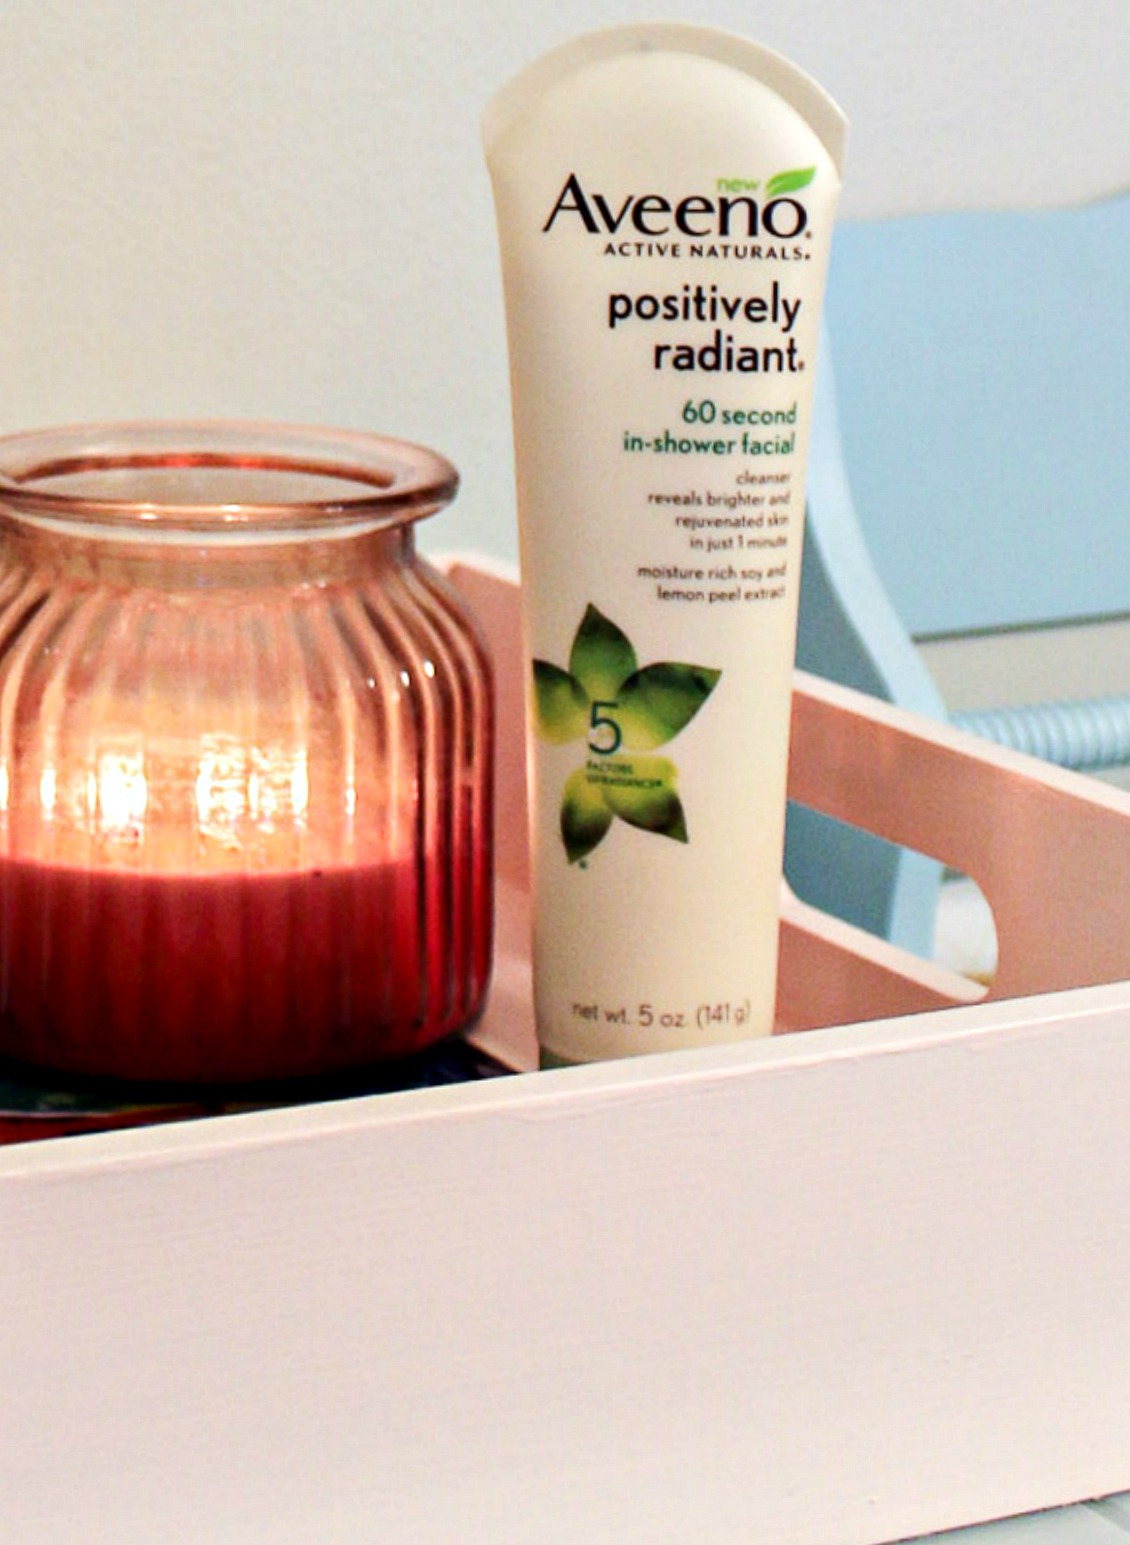 Aveeno Positively Radiant 60 second in shower facial